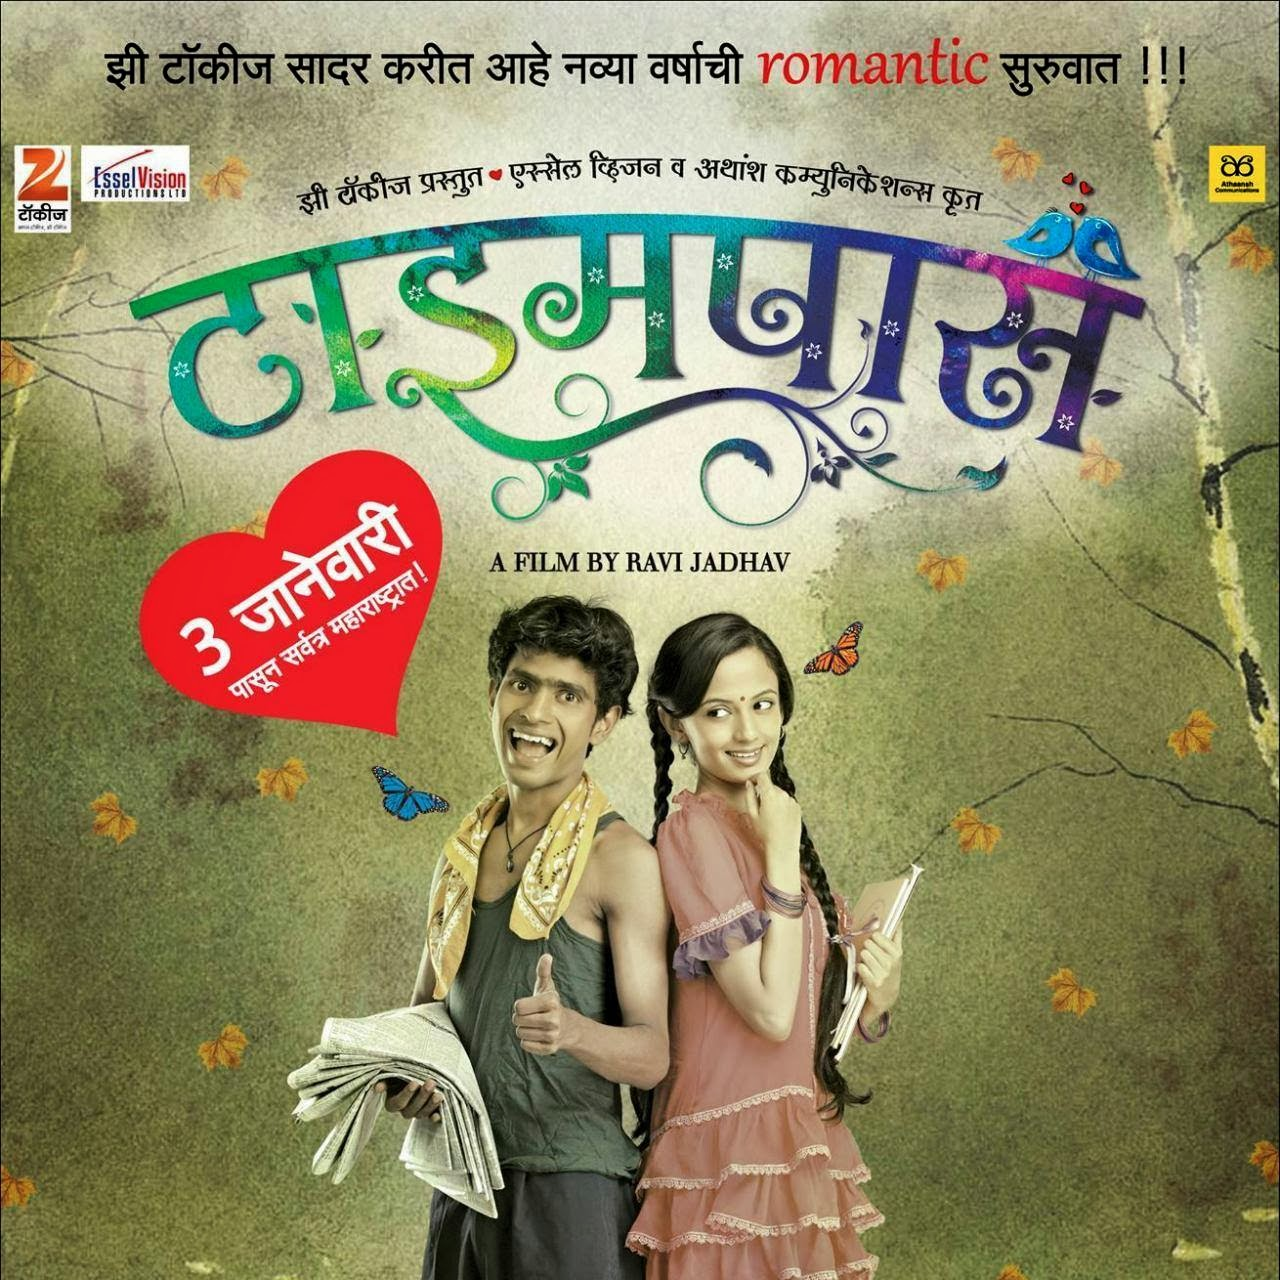 Timepass Full Marathi Movie DvdRip Hd MP4 Free Ddownload ~ Marathi Mp3